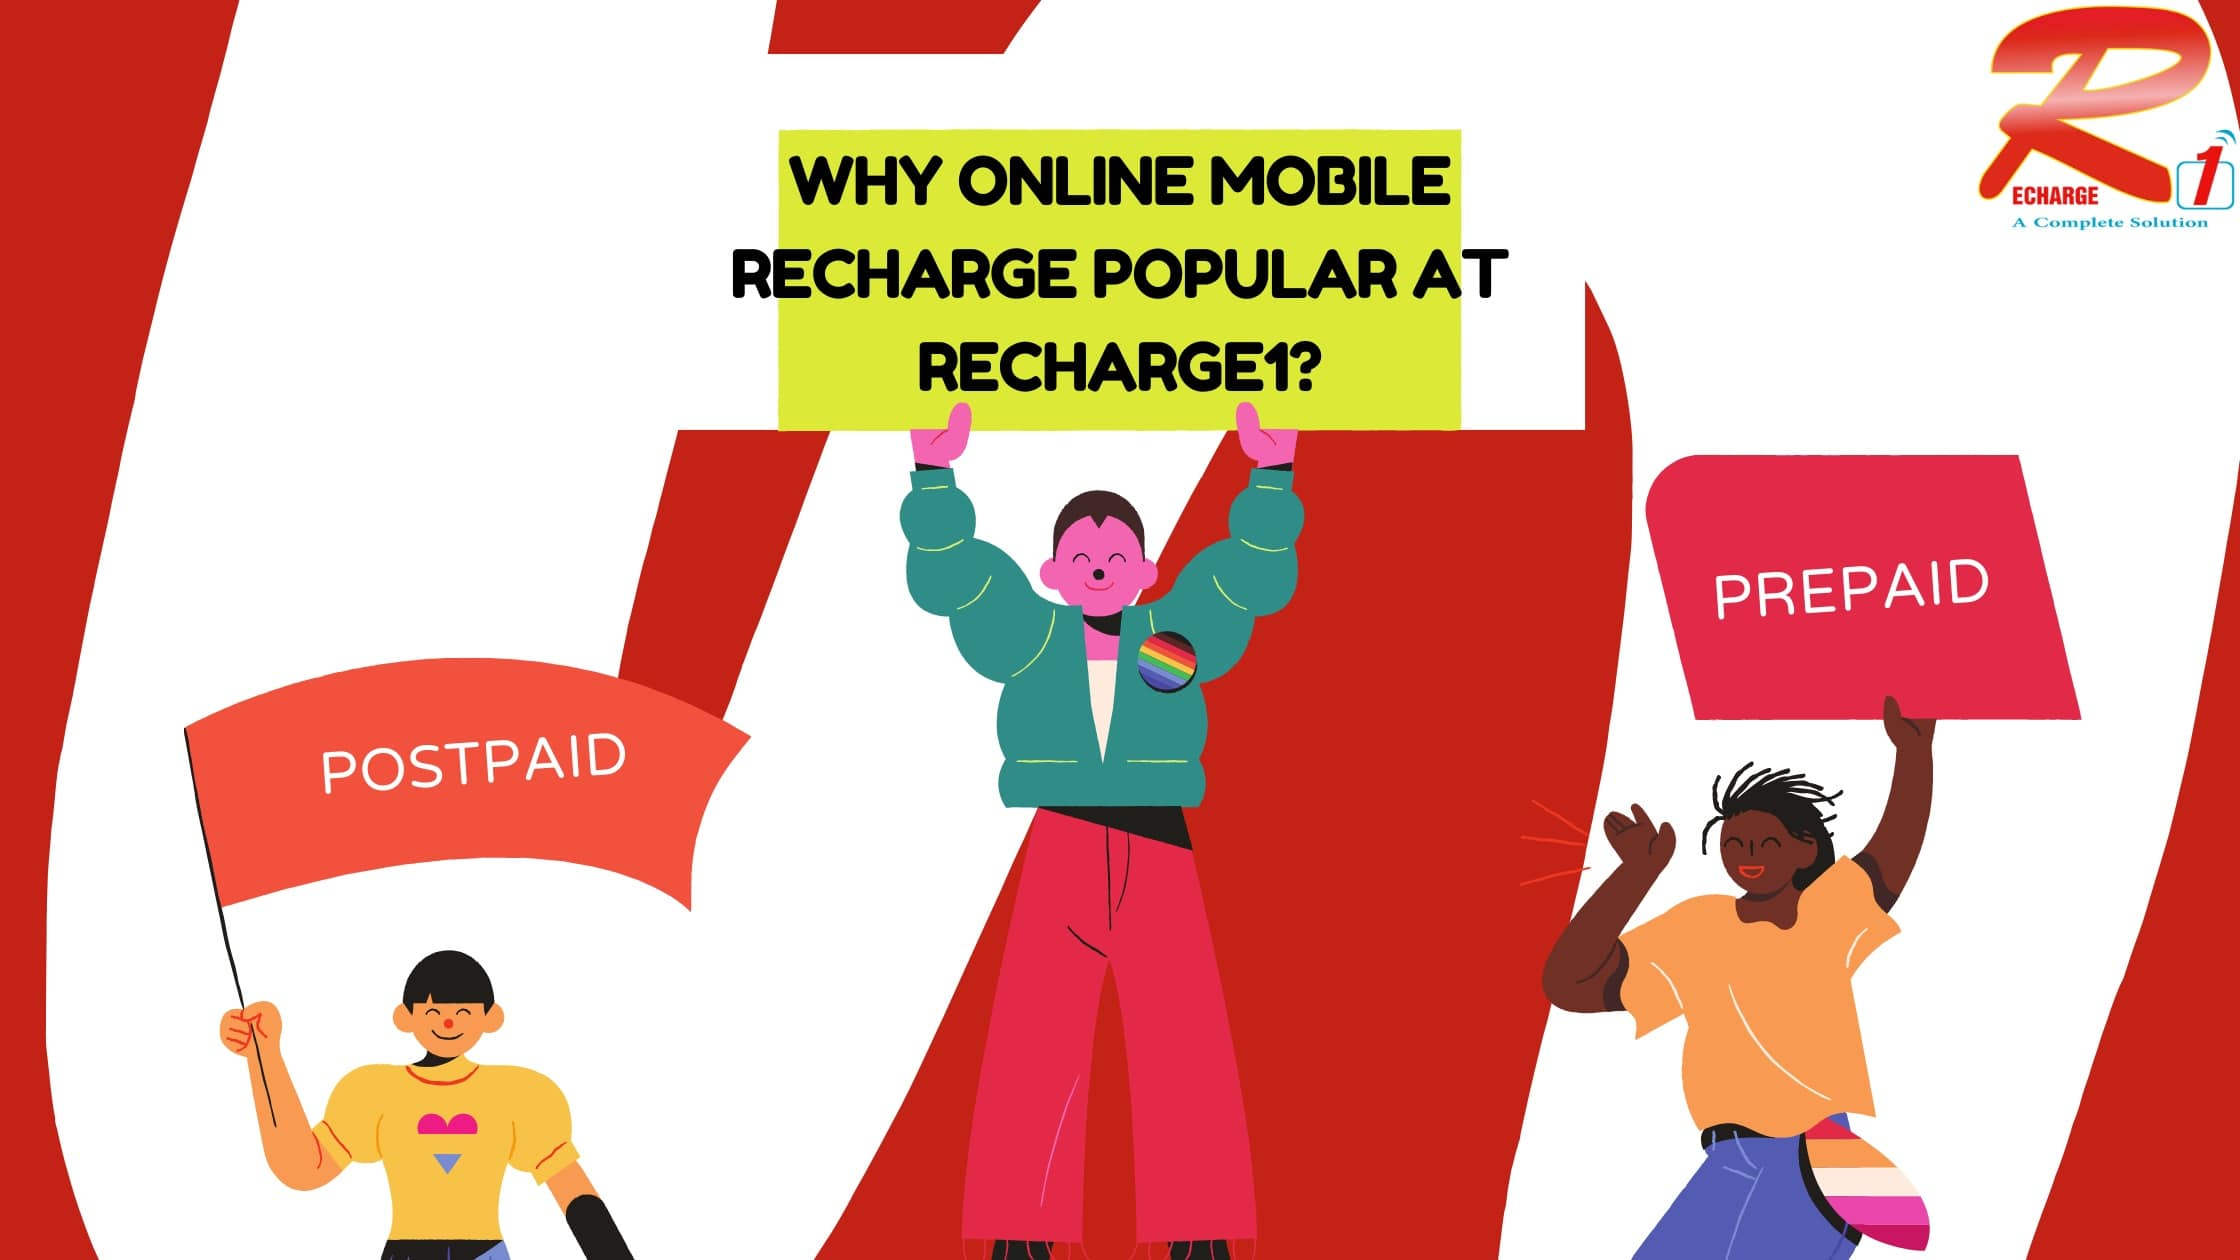 Why Online Mobile Recharge Is Popular At Recharge1?